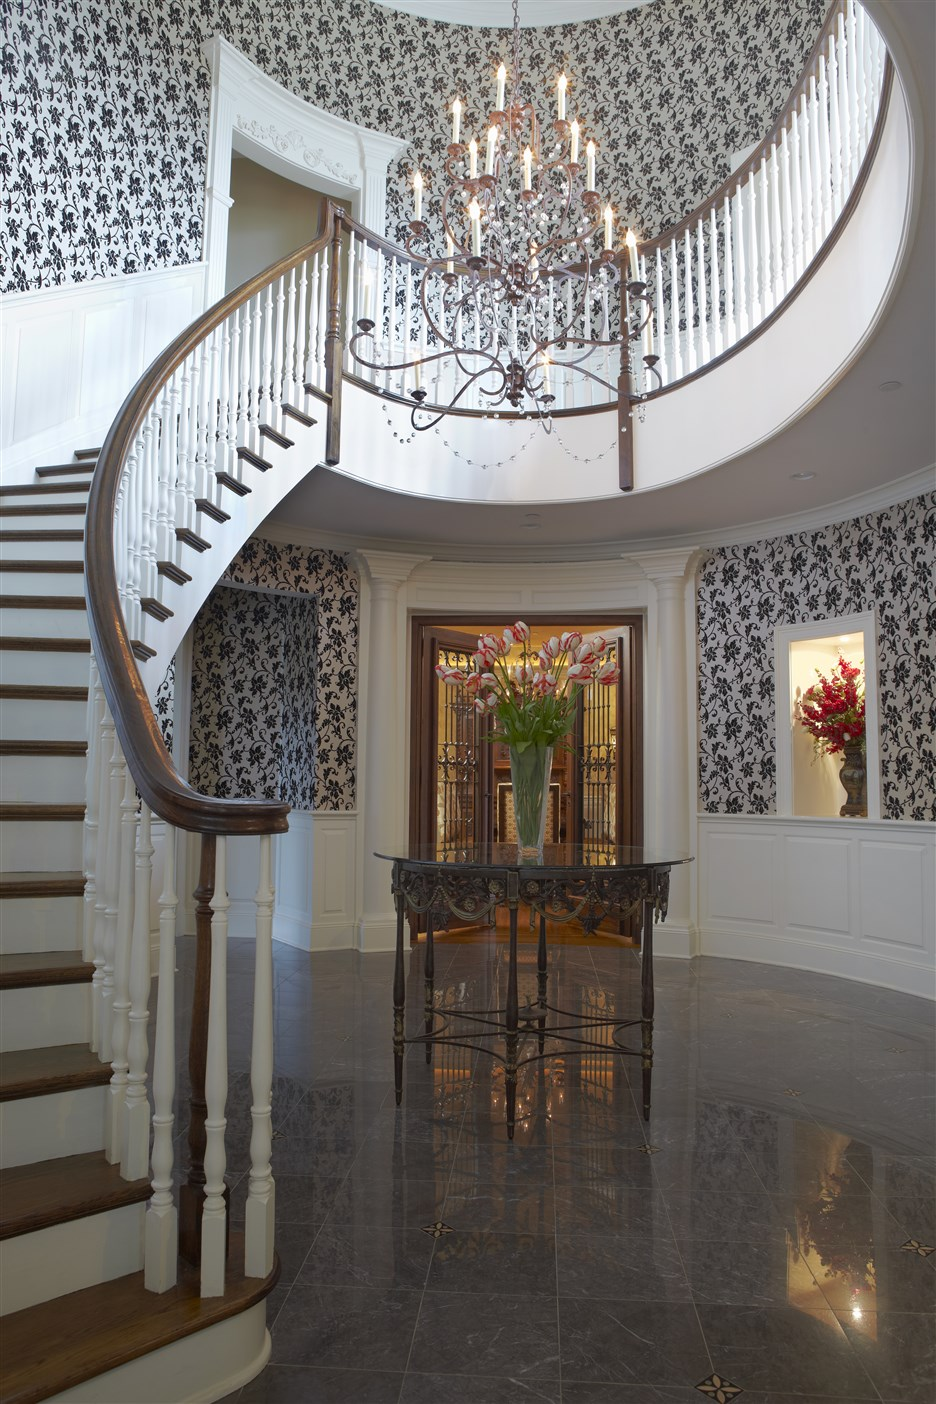 Wooden curve staircase with white railing